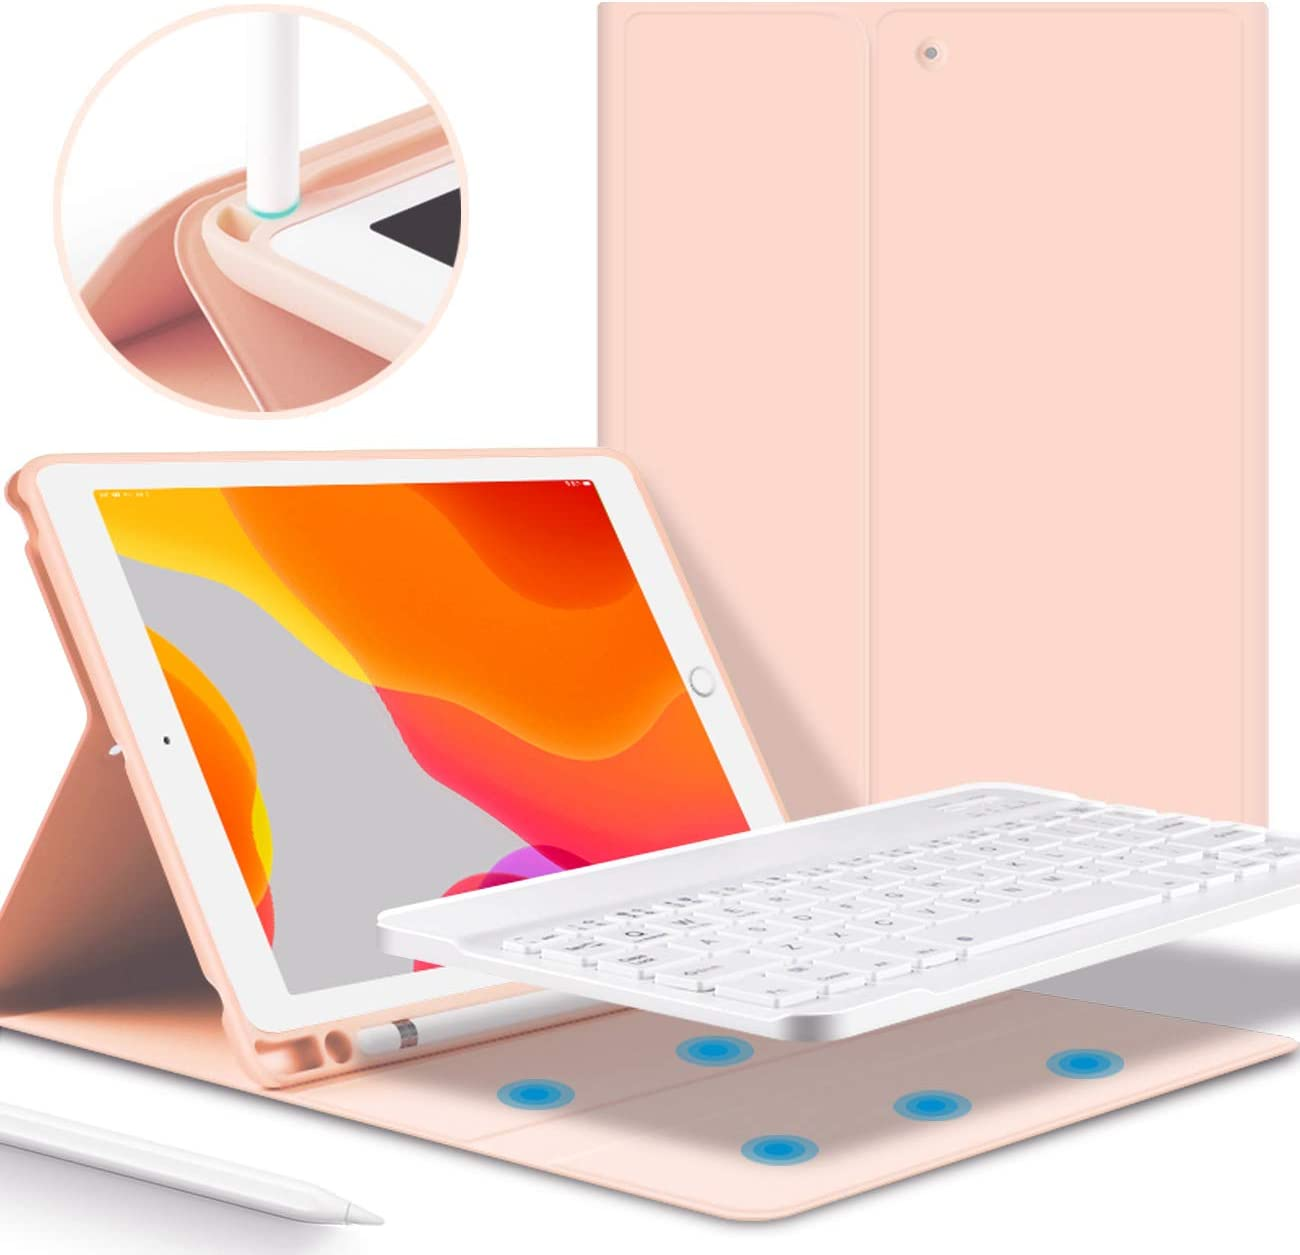 KenKe iPad Keyboard Case for iPad 2018 2017 - iPad Air 1 & Air 2 Cover with Pencil Holder with Bluetooth Wireless Detachable Keyboard 9.7 inch iPad 5th/6th Generation with Keyboard-(Pink)